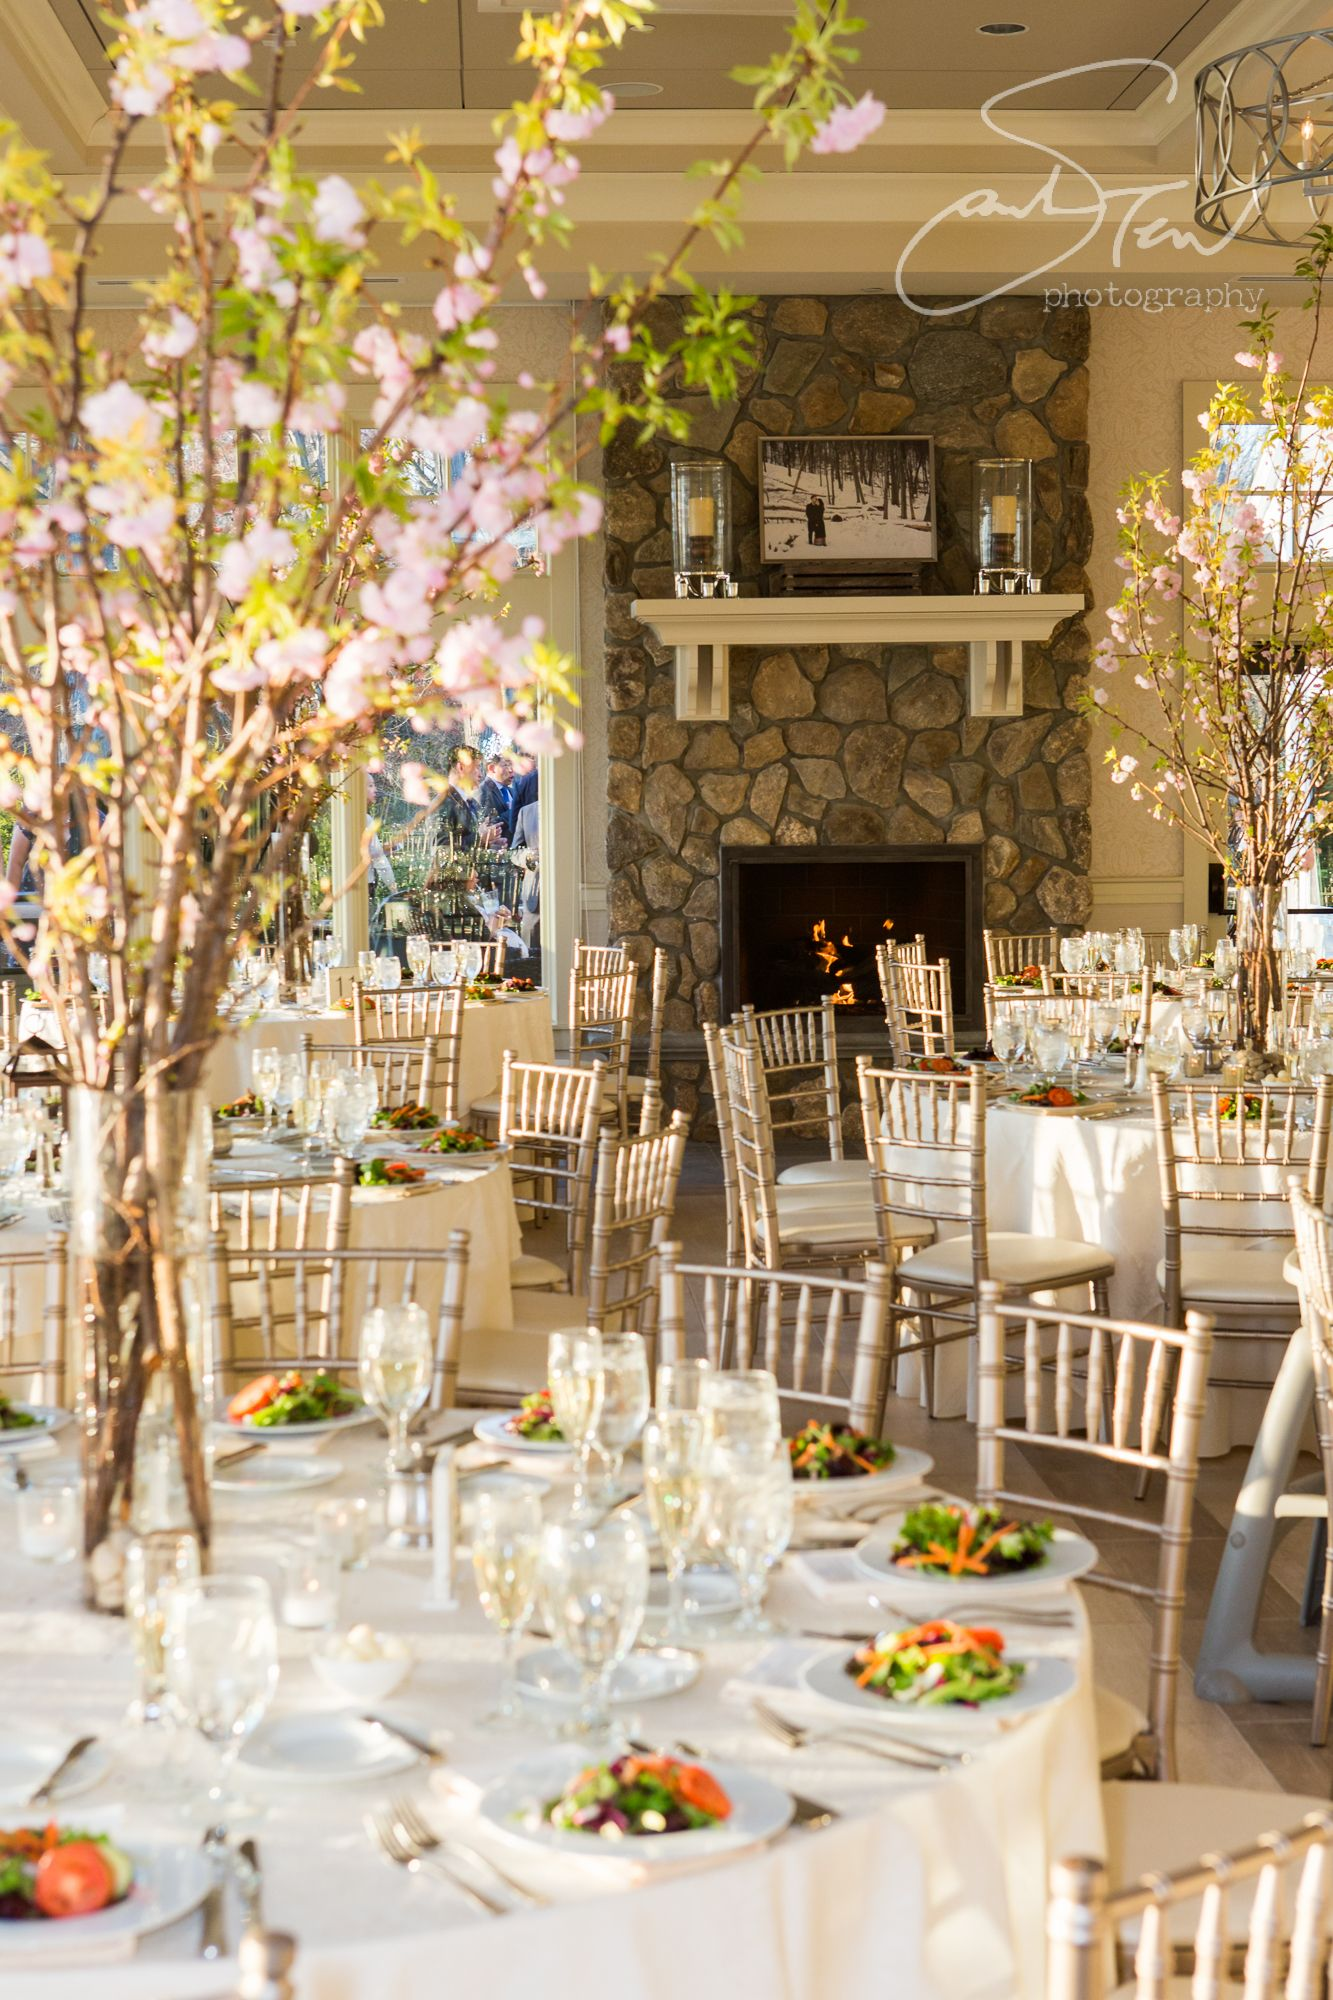 April wedding at Indian Trail club in New Jersey © Sarah